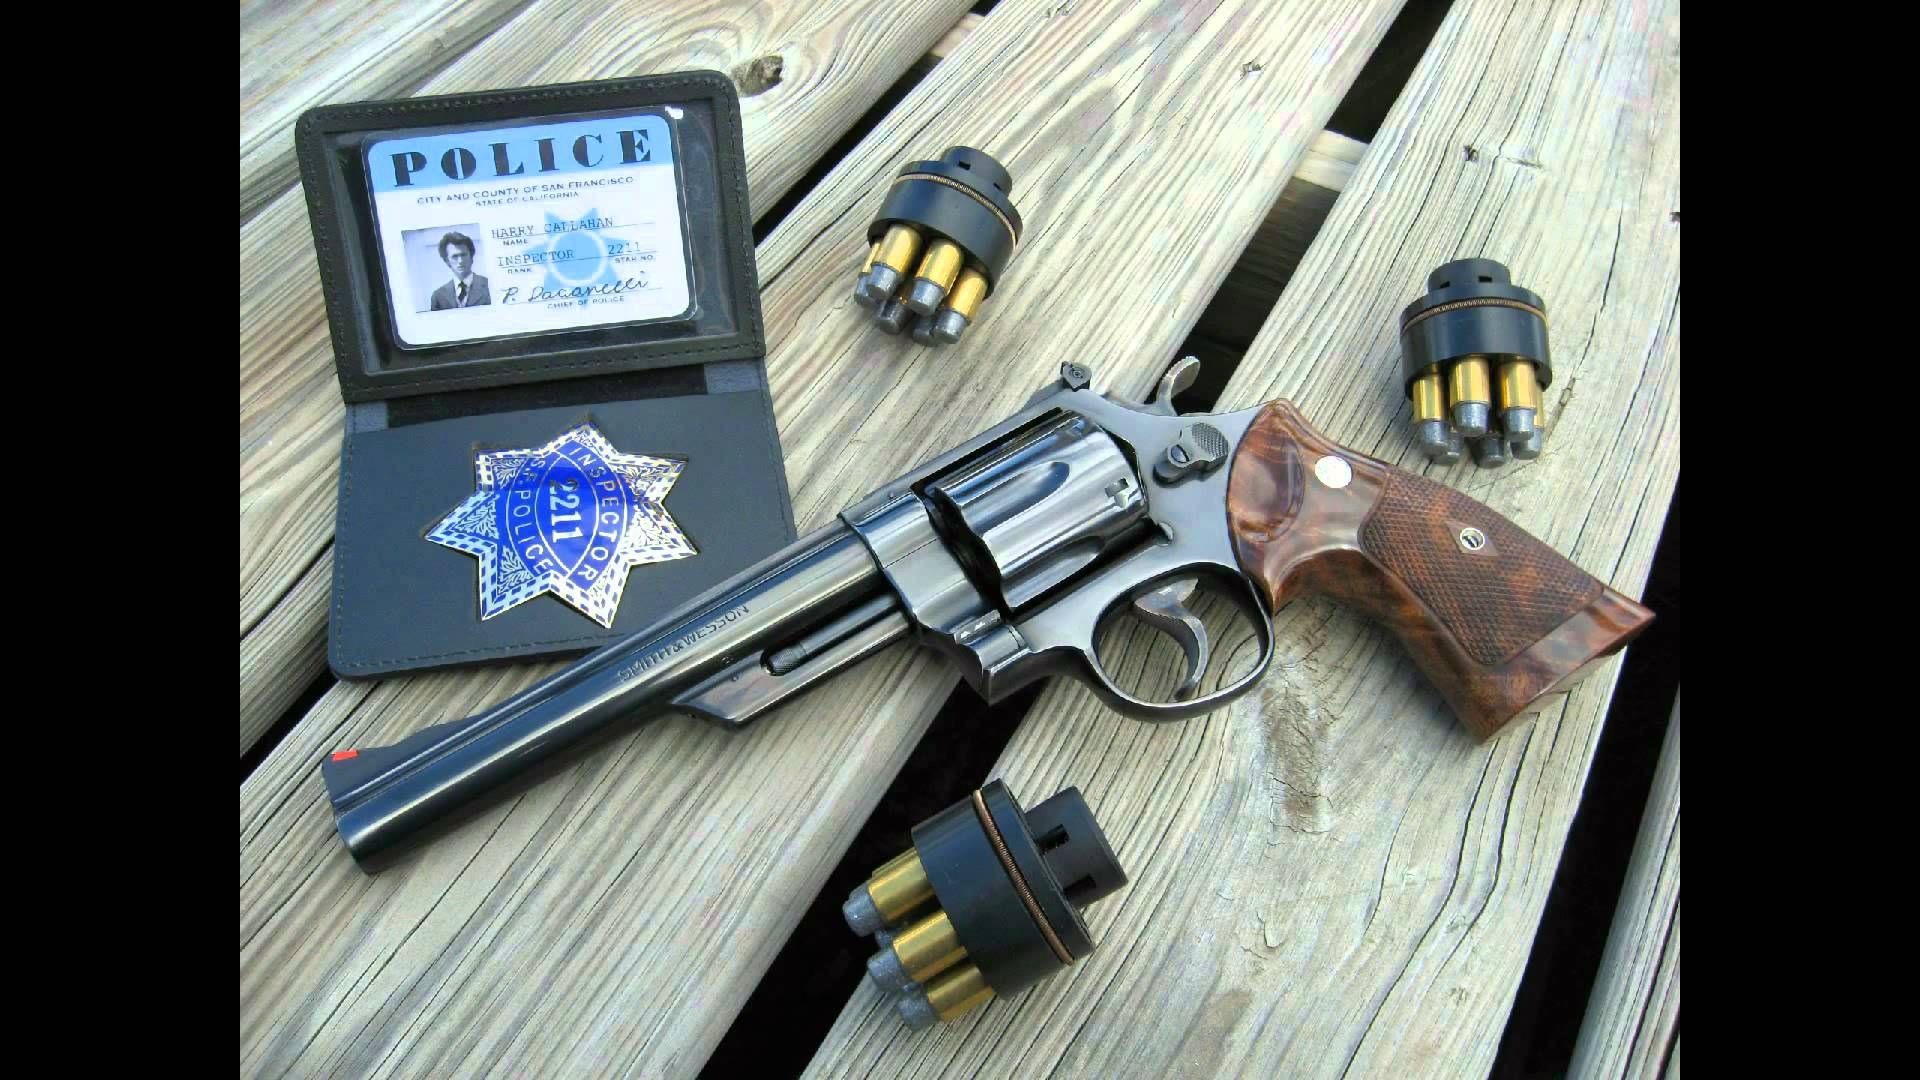 Dirty harry GUN 44 Magnum Model 29 | Microbuffs Youtube Channel | Pinterest | 44 magnum and Guns